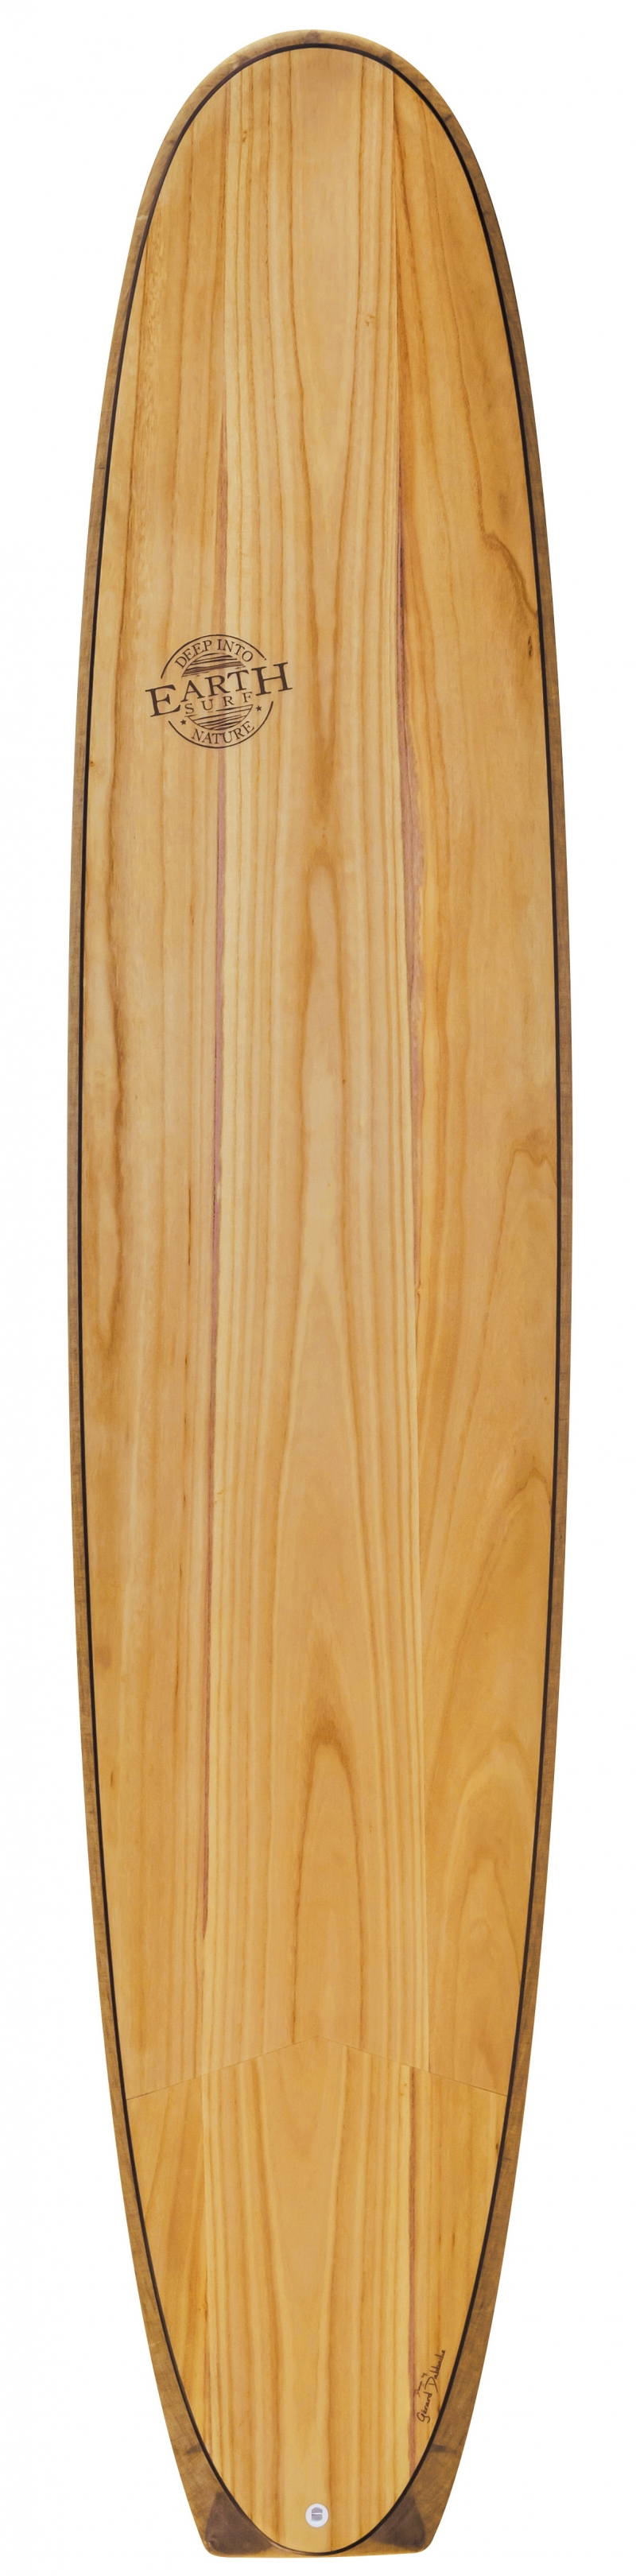 The 9'4 SixtyNiner Log is a tribute to the origins of longboarding. Styled after the solidwood boards that gave birth to what we call surfing today, with a traditional longboard outline and an extra wide square tail that facilitates planning. More natural materials: Paulownia wood & Flax fiber  Woodcore fins included  Varnish-free matte finish $999